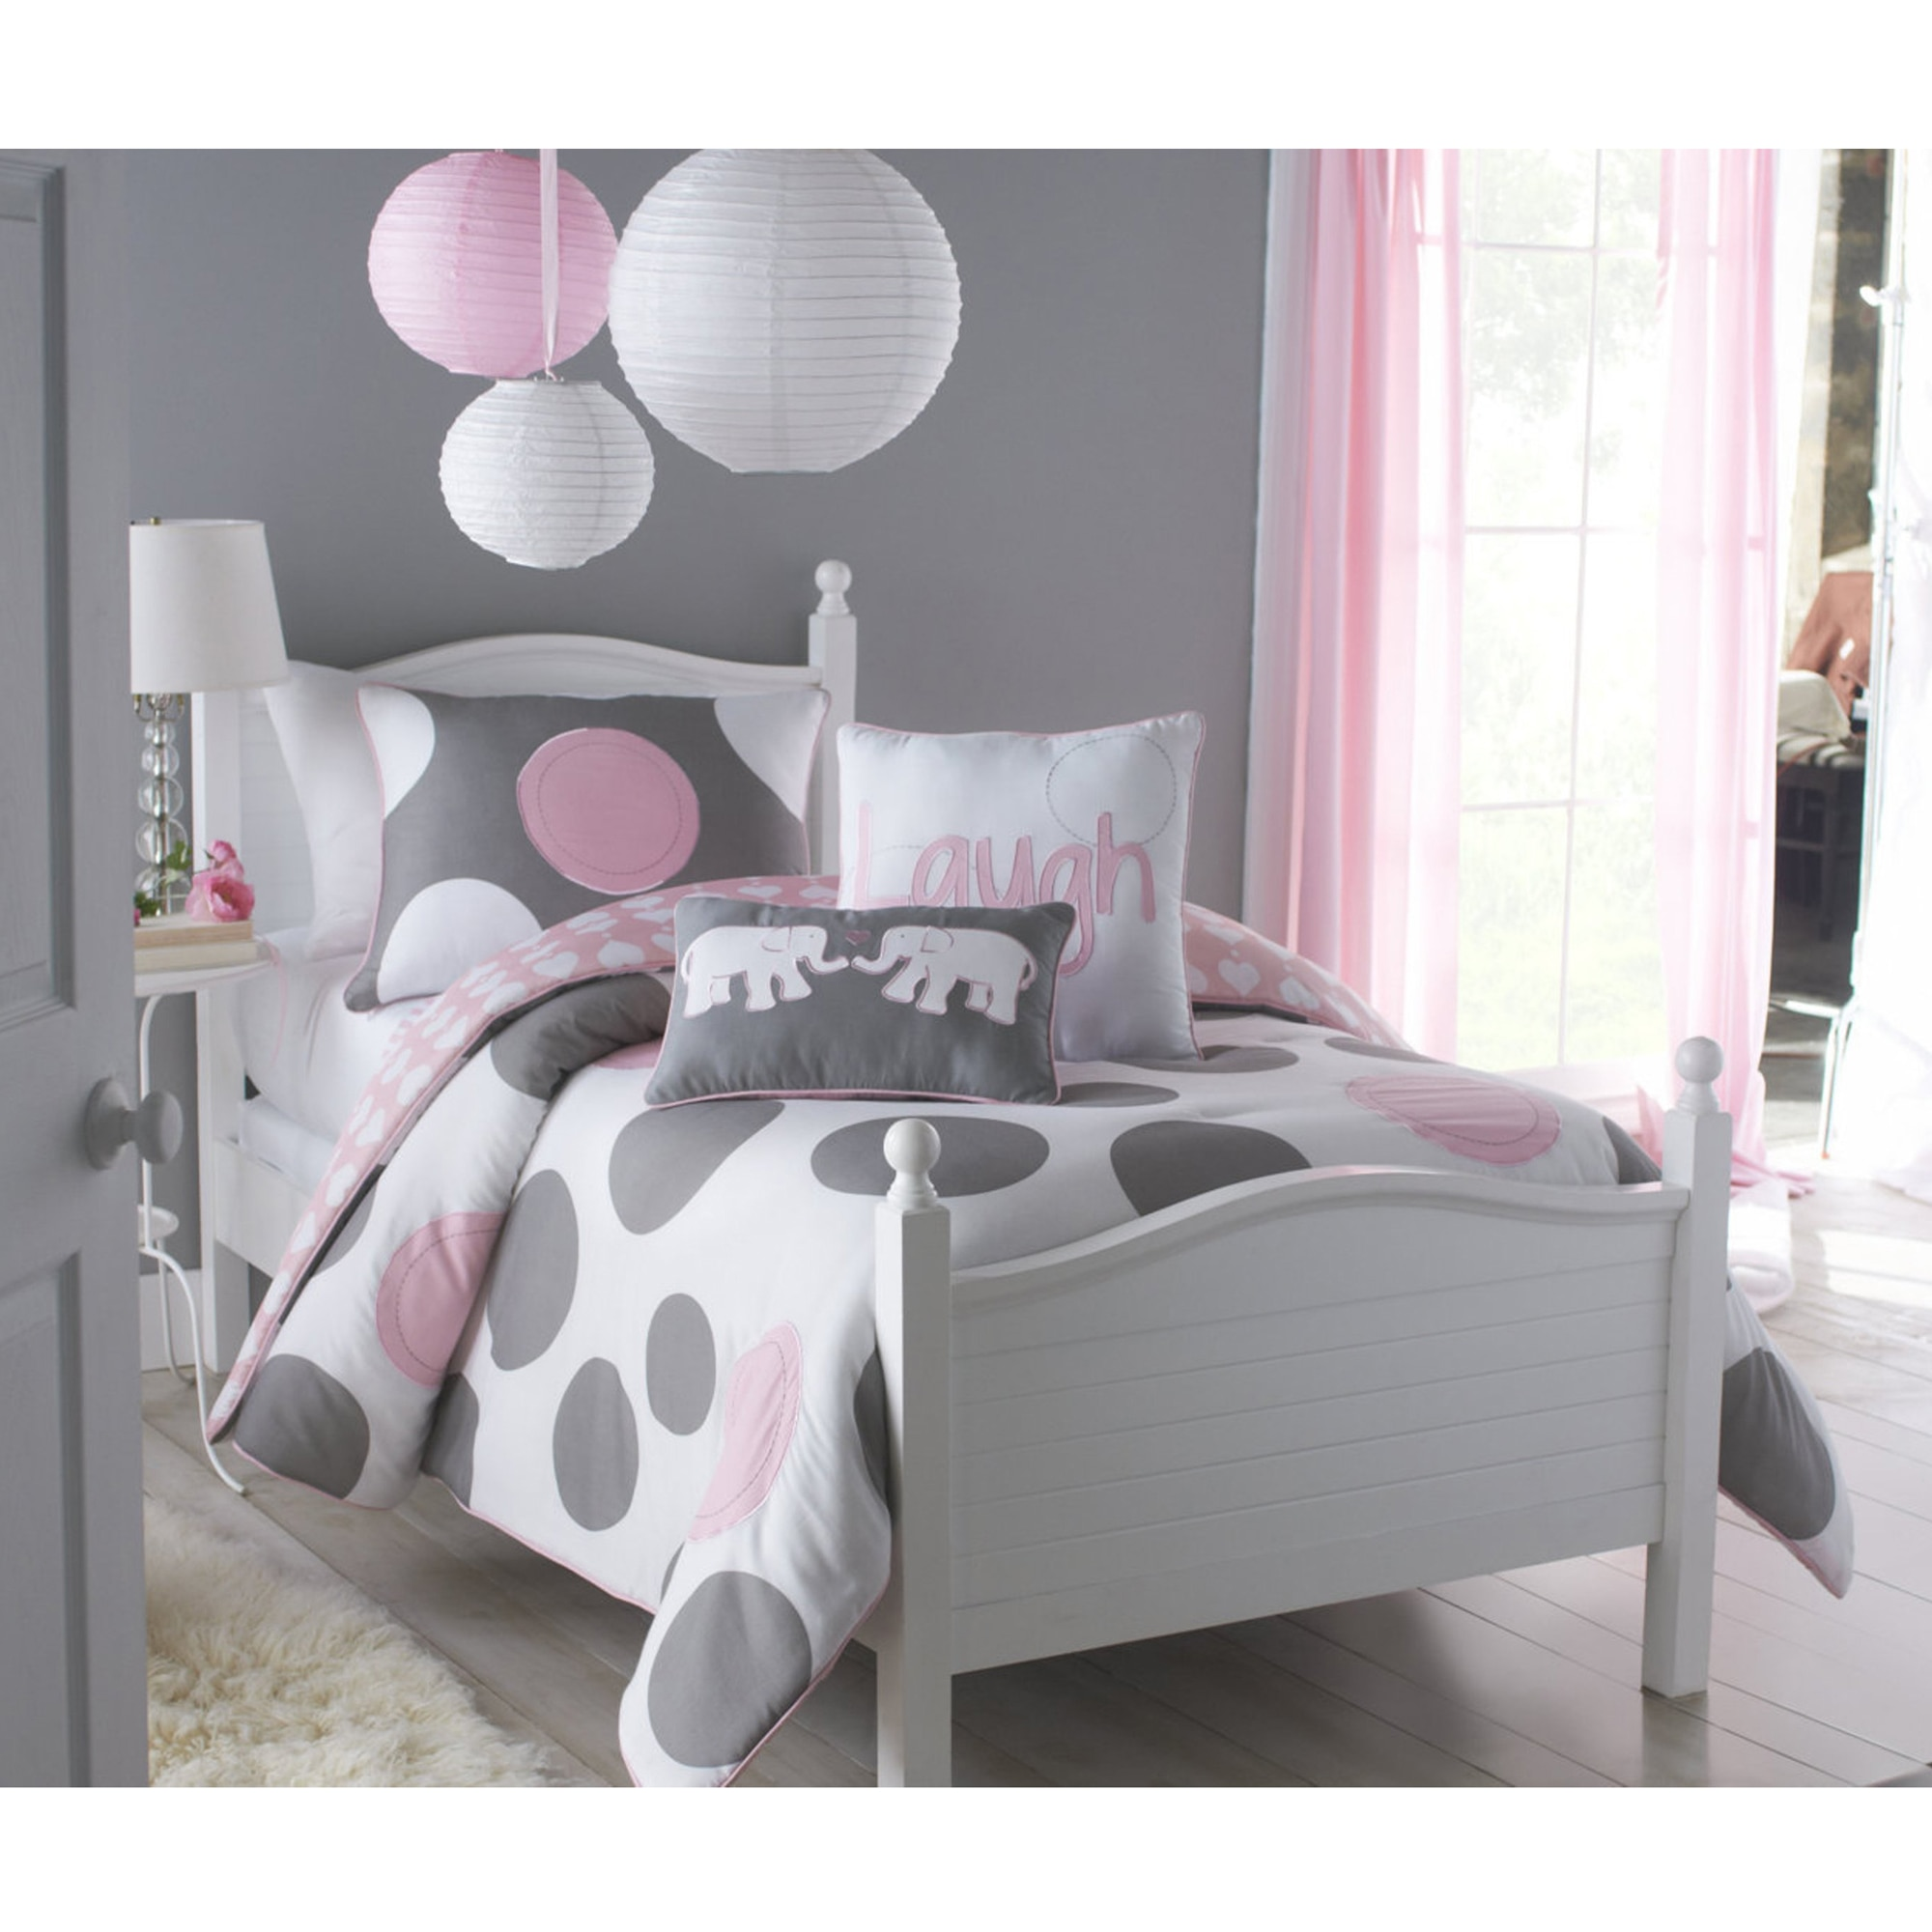 skulls pink kitchen kids home set com size graphite dp amazon twin veratex modern comforter piece bedroom graphic bedding collection